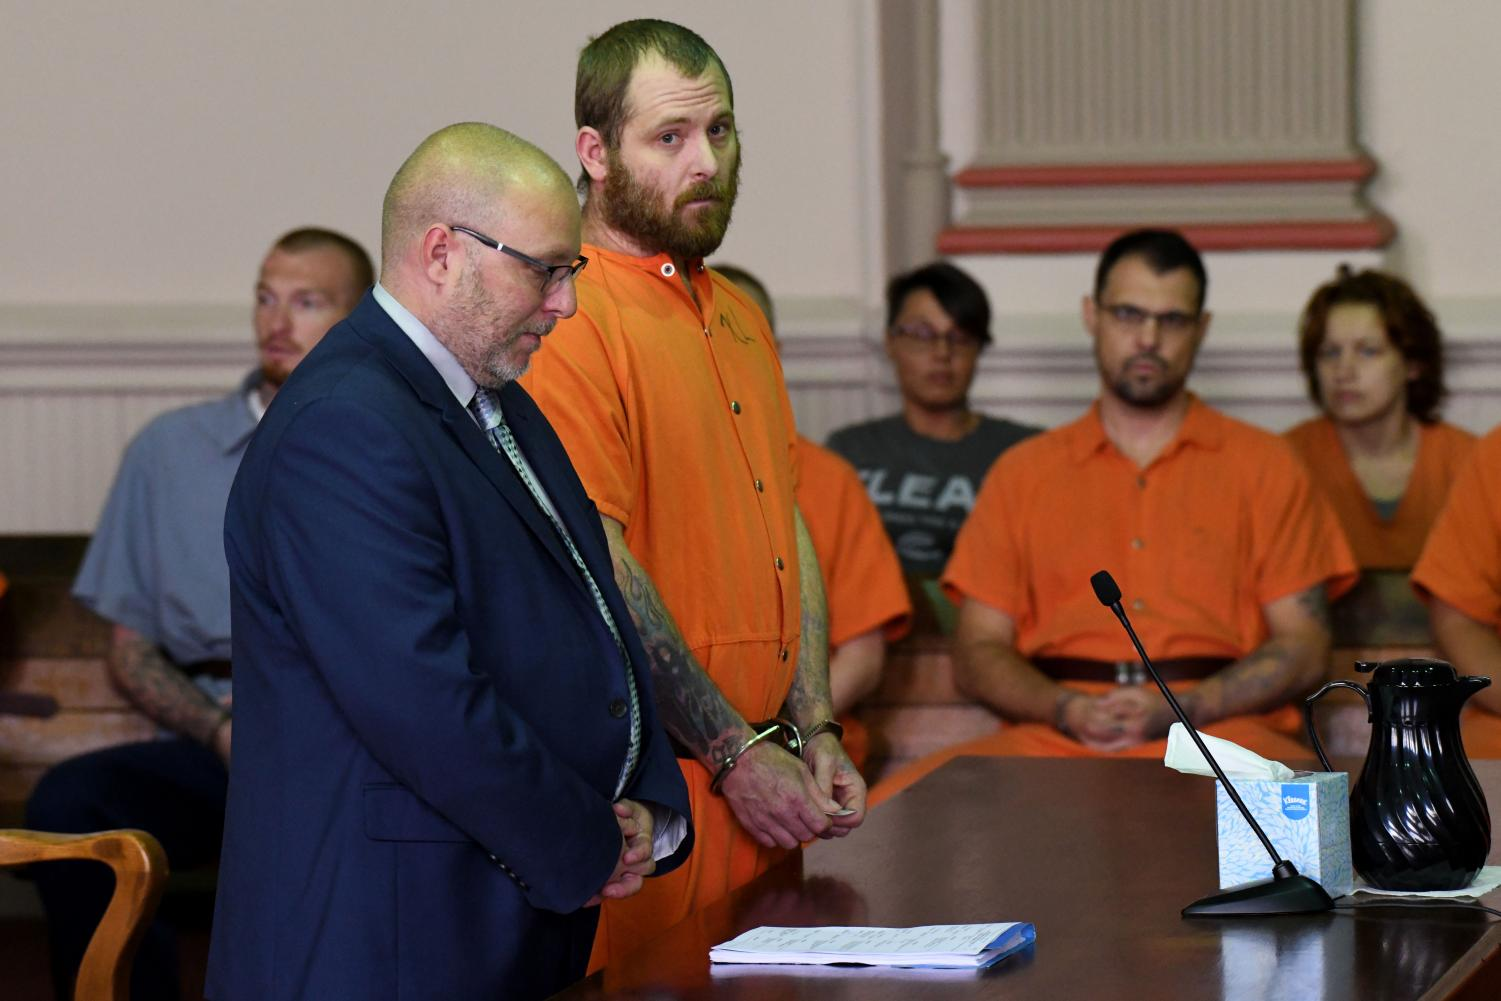 Derek Bush appeared in court on Wednesday, Sept. 11, for his arraignment.